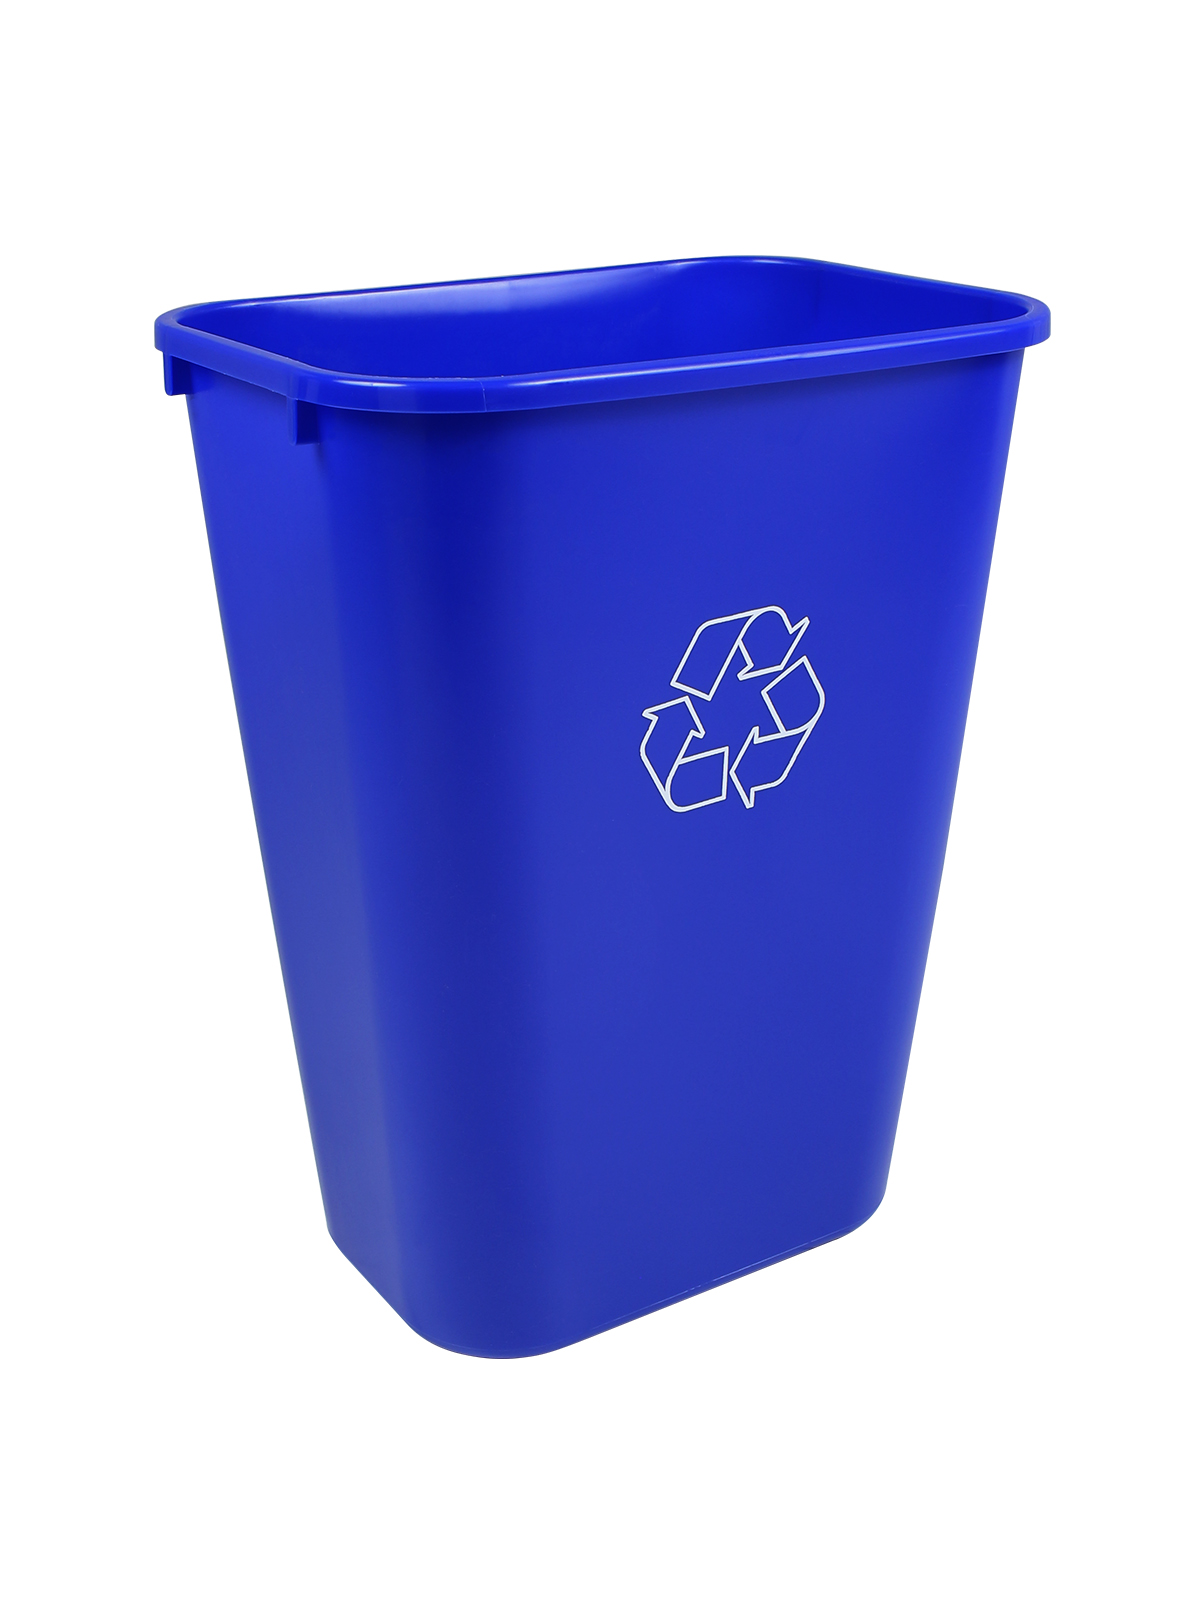 RECYCLING & WASTE BASKET 41 Q title=